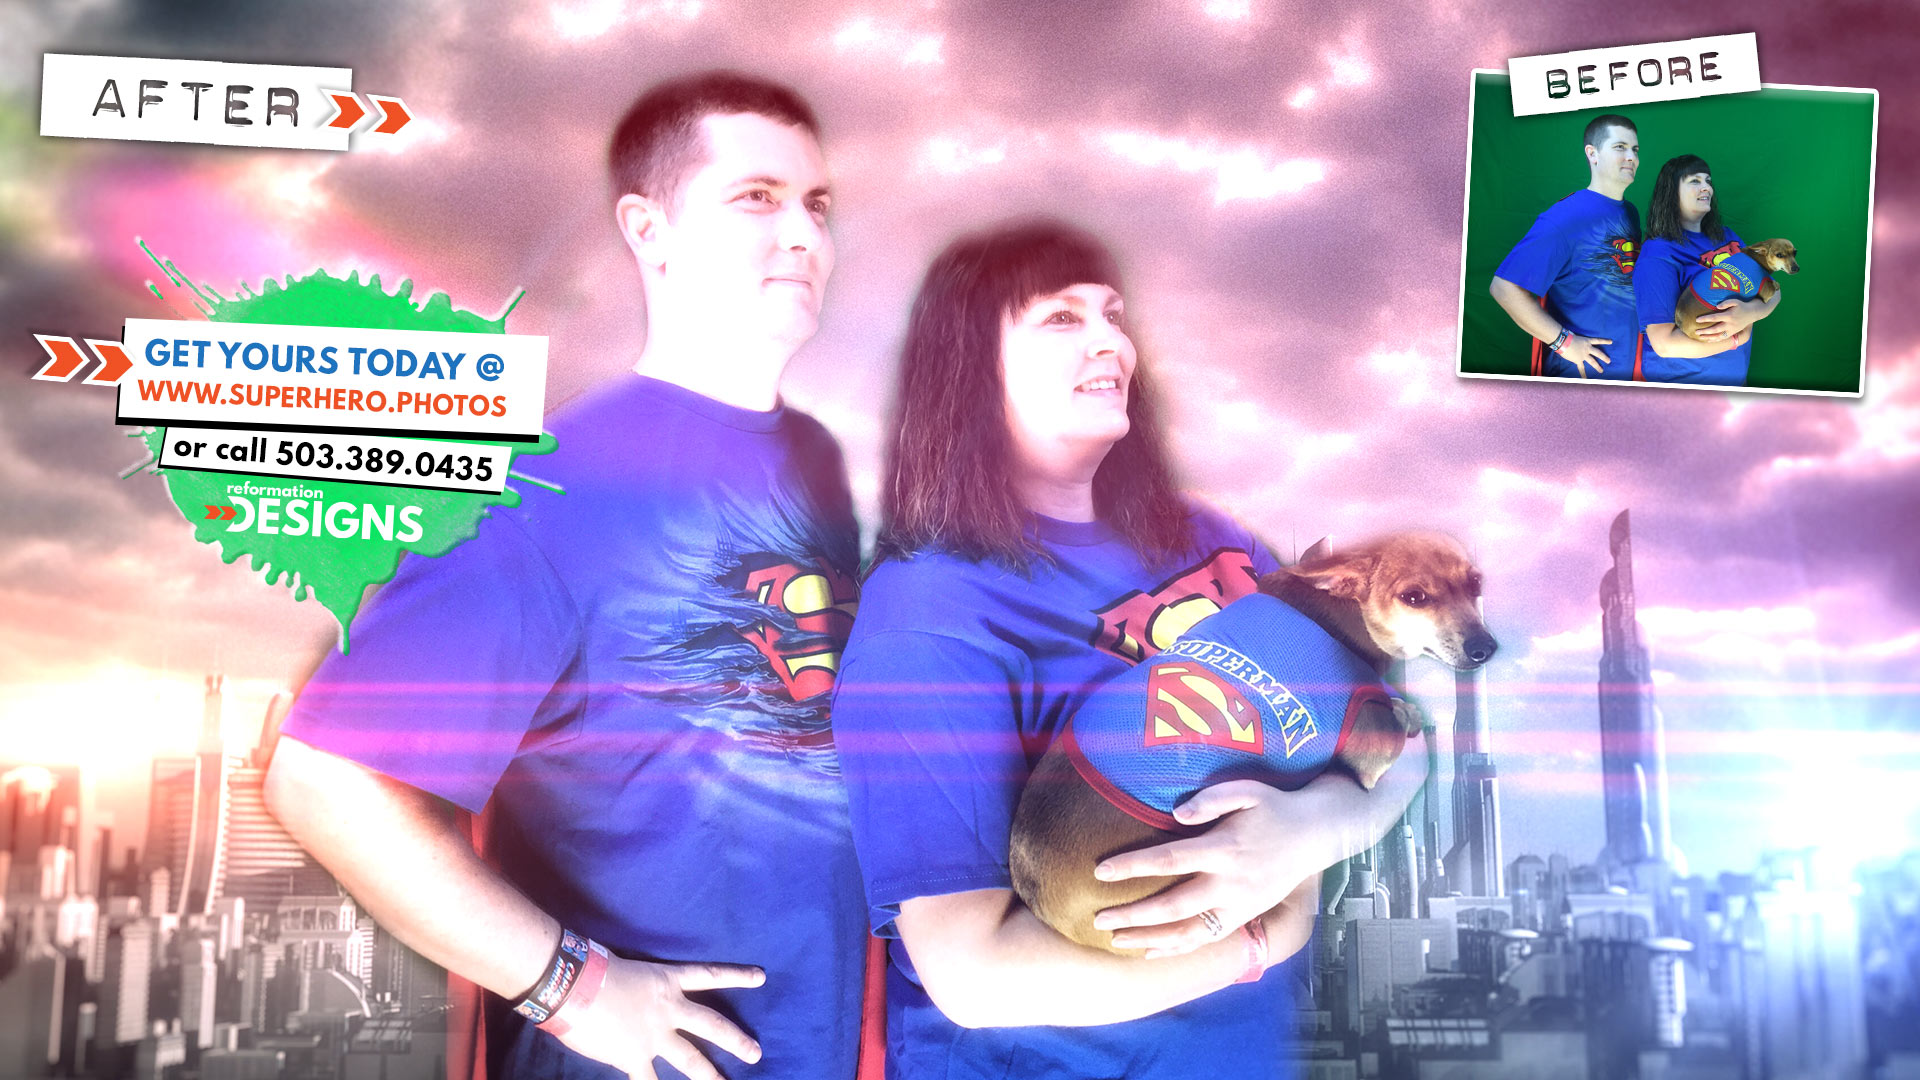 SUPERHERO PHOTOBOOTH BY REFORMATION DESIGNS - #9 - Super Family - Northwest Comic Fest - JUNE 2015